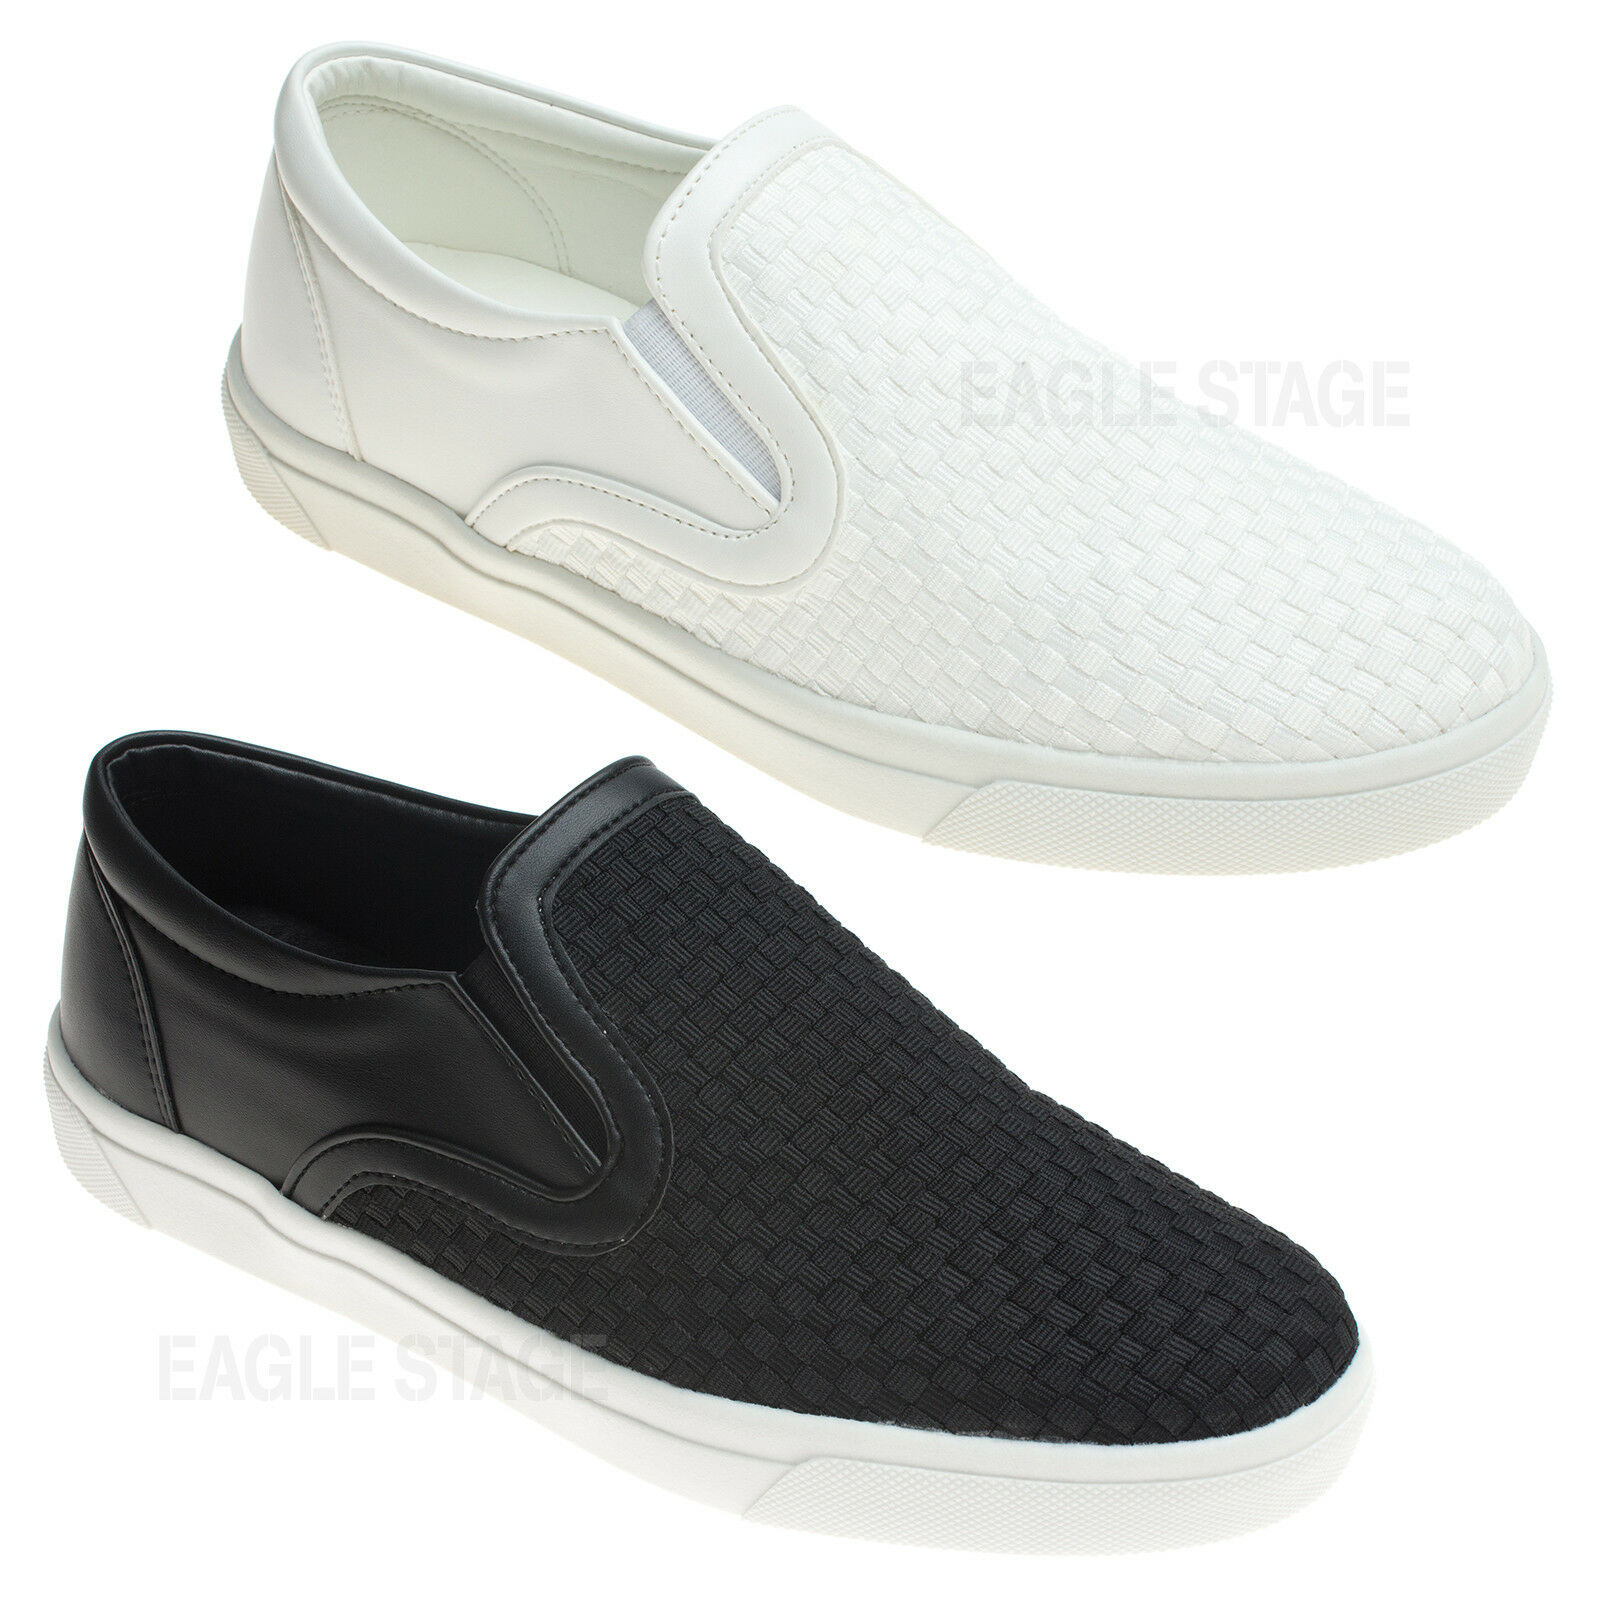 Mens Woven Slip-On Sneakers Loafer Casual Walking Fashion Sneakers Slip-On 77ff42